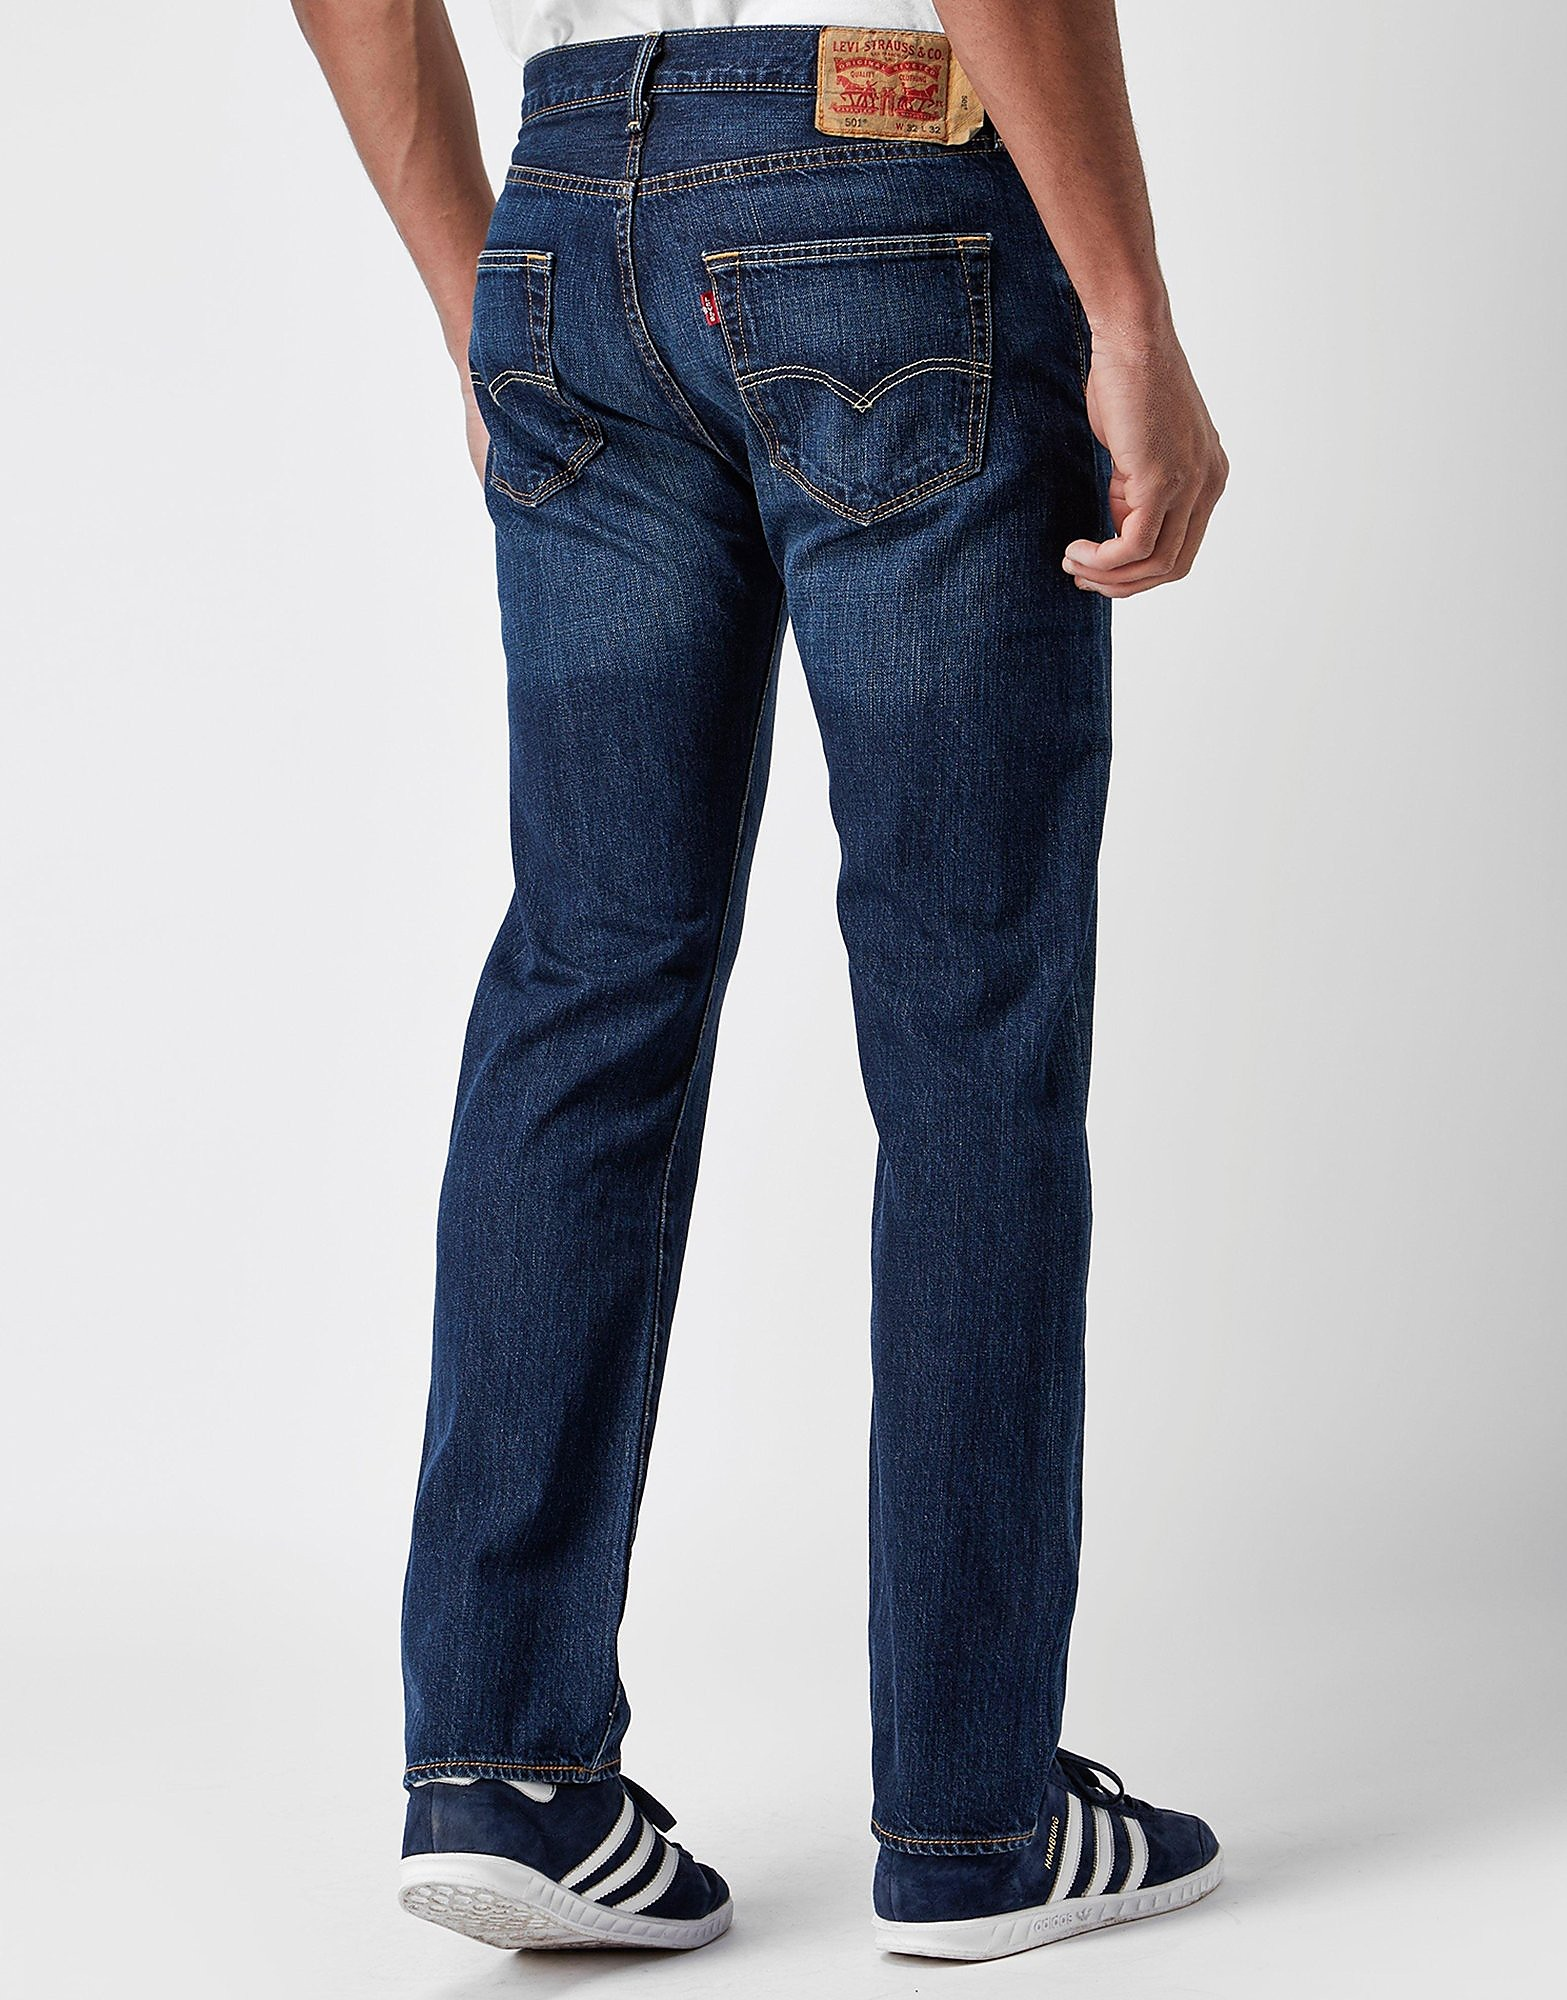 Levis 501 Regular Fit Jeans